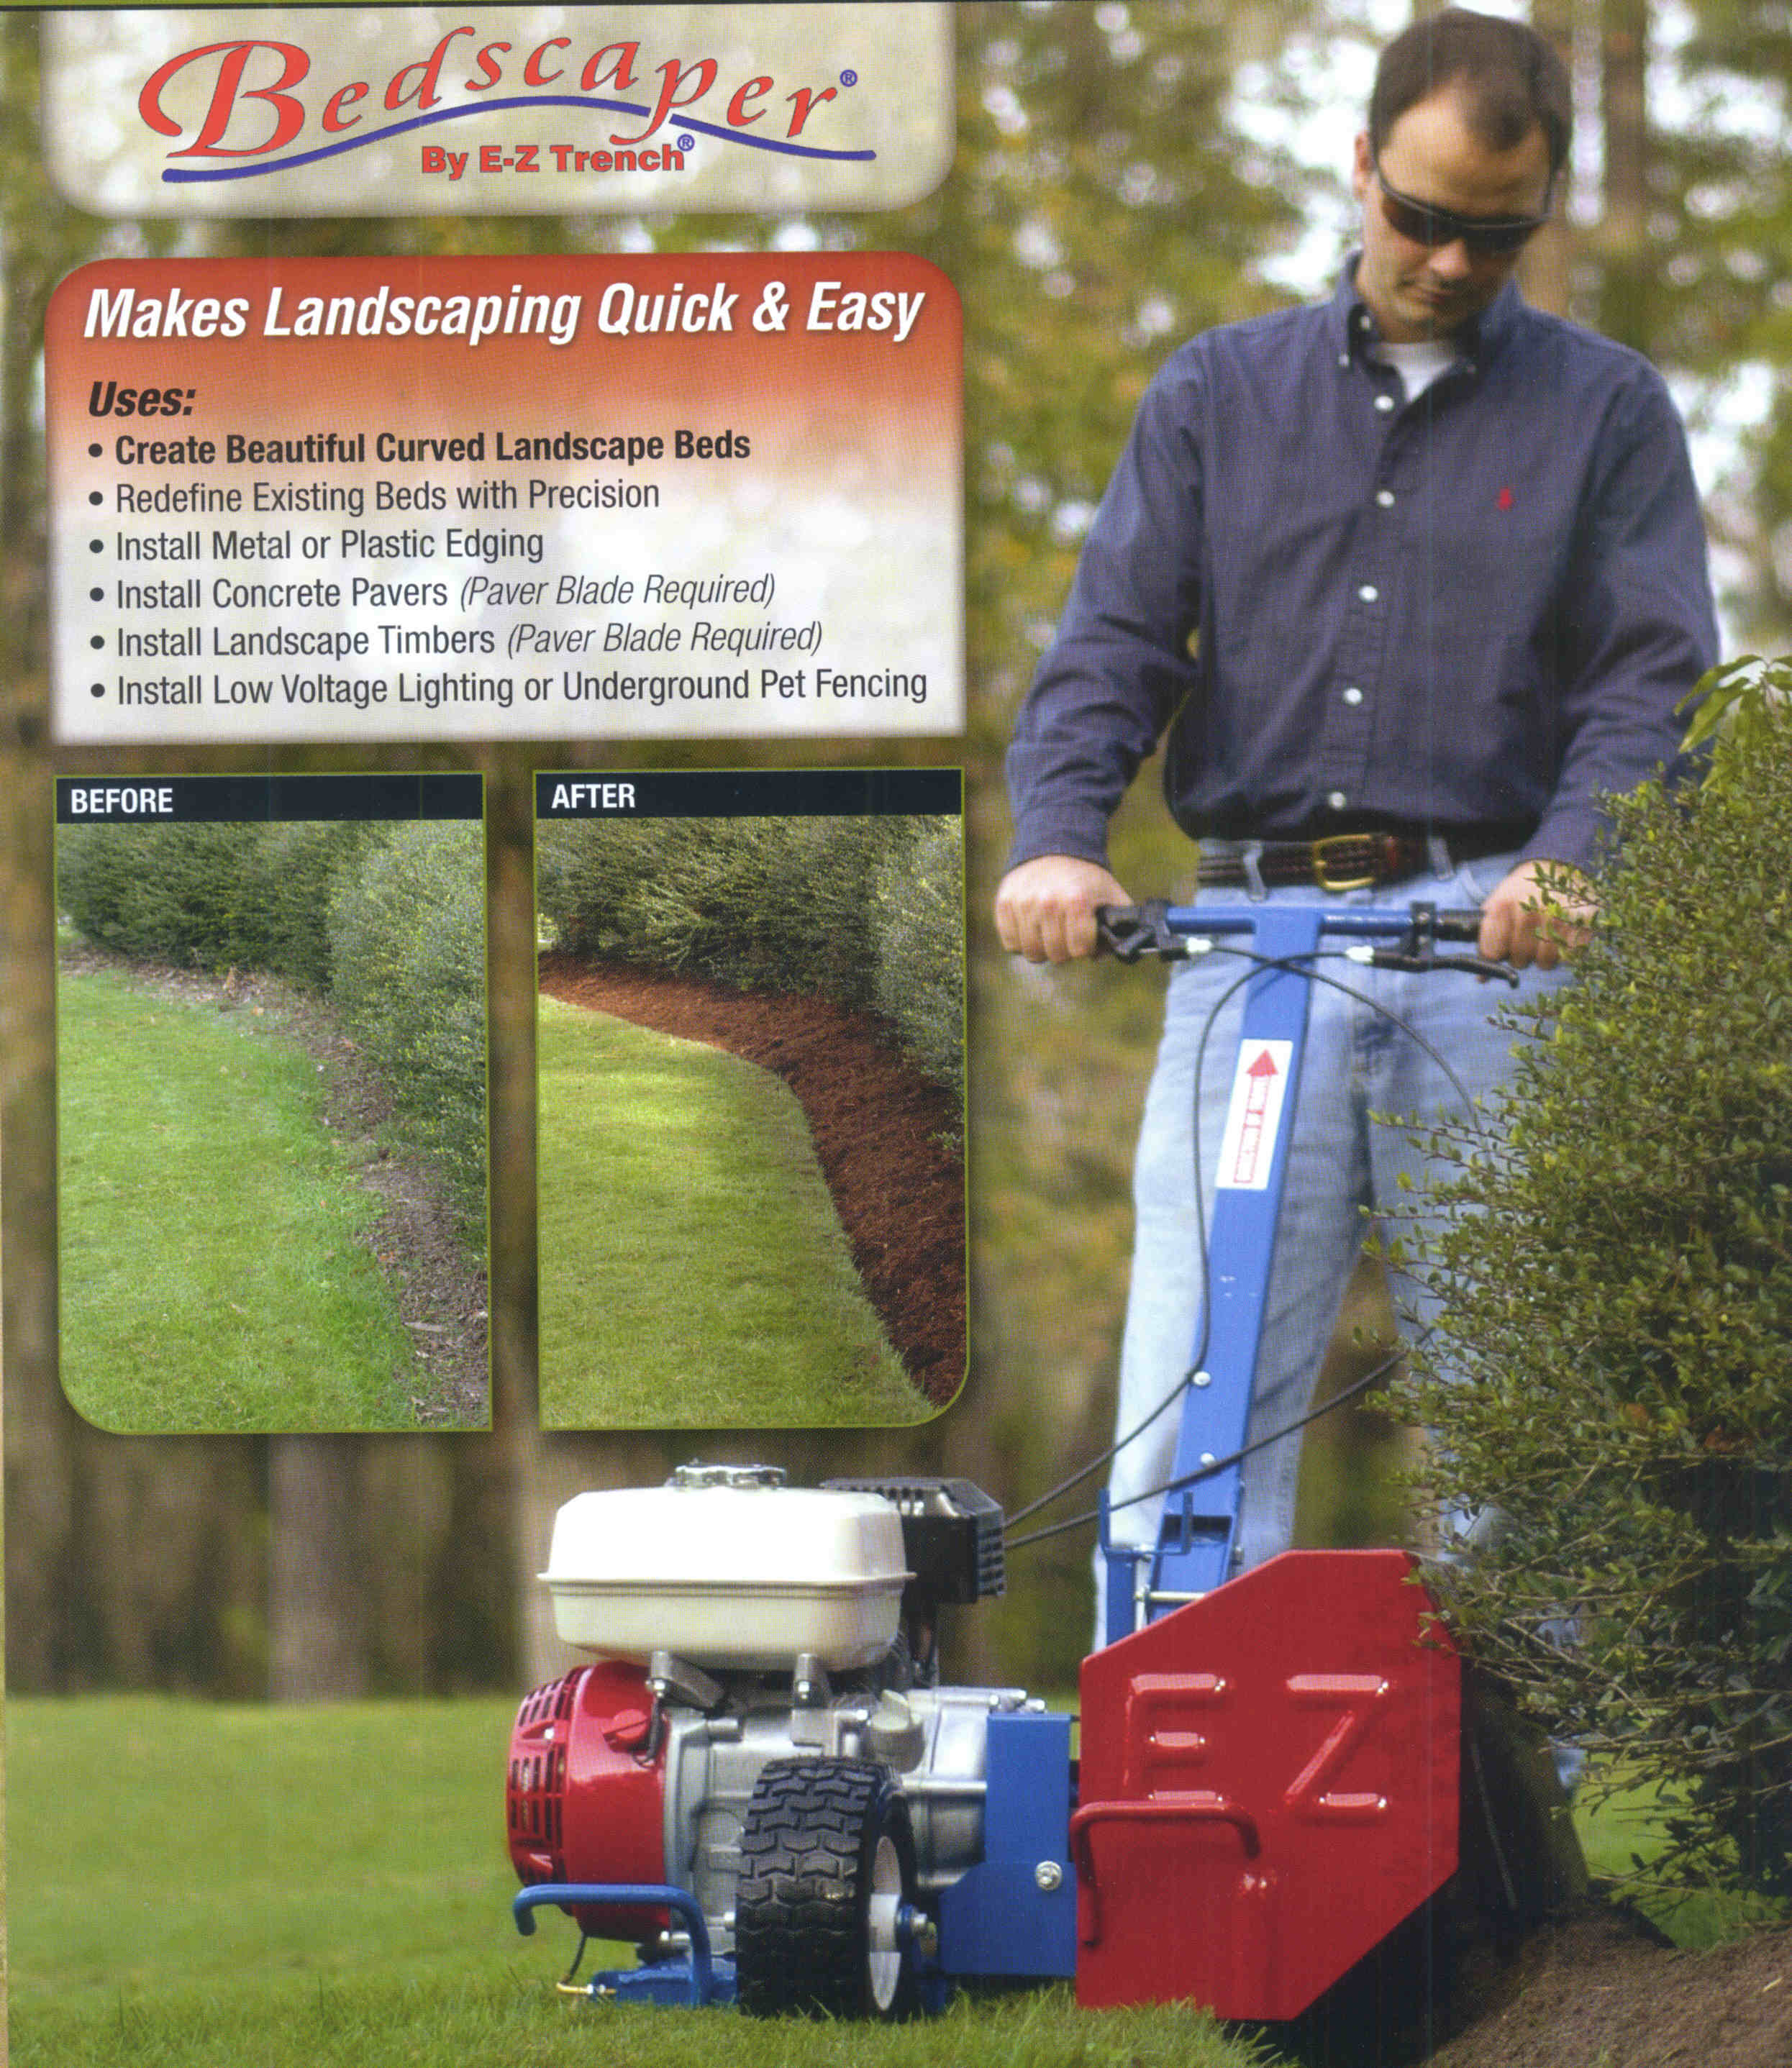 Bedscaper Landcape Bed Machine